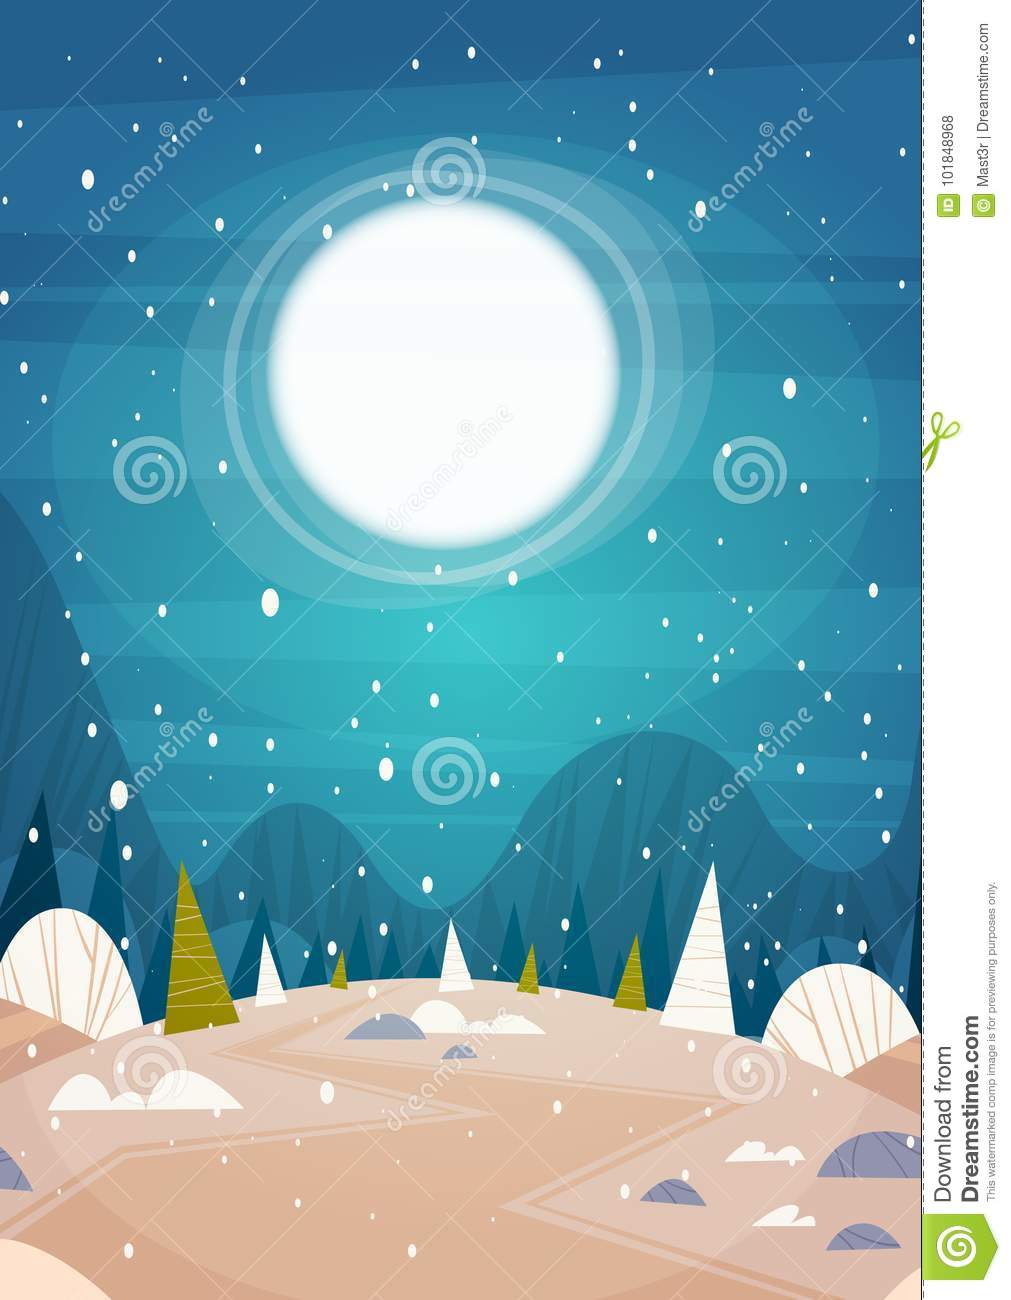 winter forest landscape moon shining over snowy trees merry christmas and happy new year banner holidays concept flat vector illustration